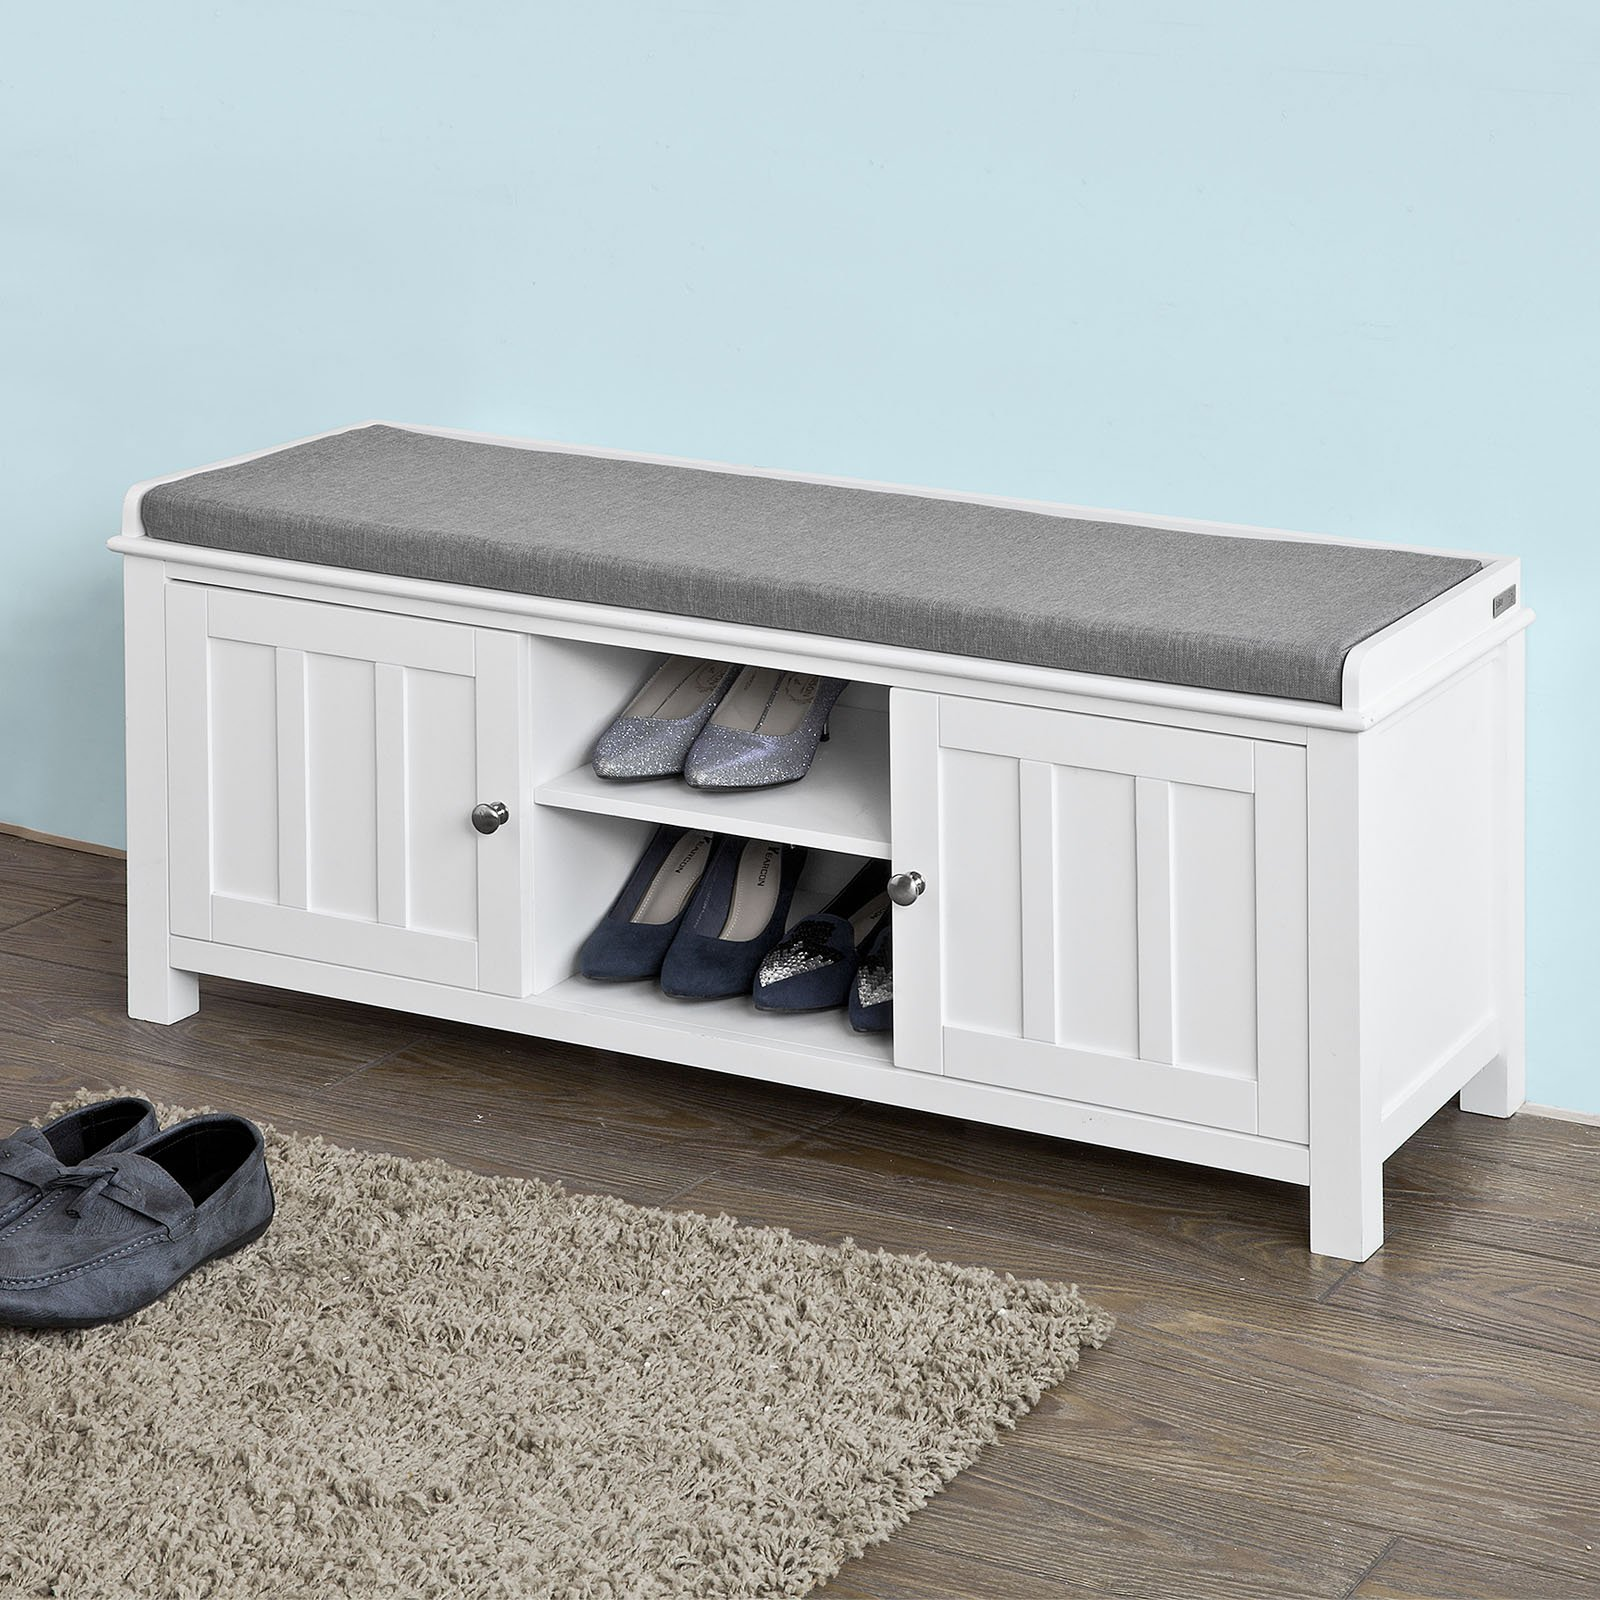 Haotian White Storage Bench with 2 Doors & Removable Seat Cushion, Shoe Cabinet Shoe Bench,FSR35-W,White by Haotian